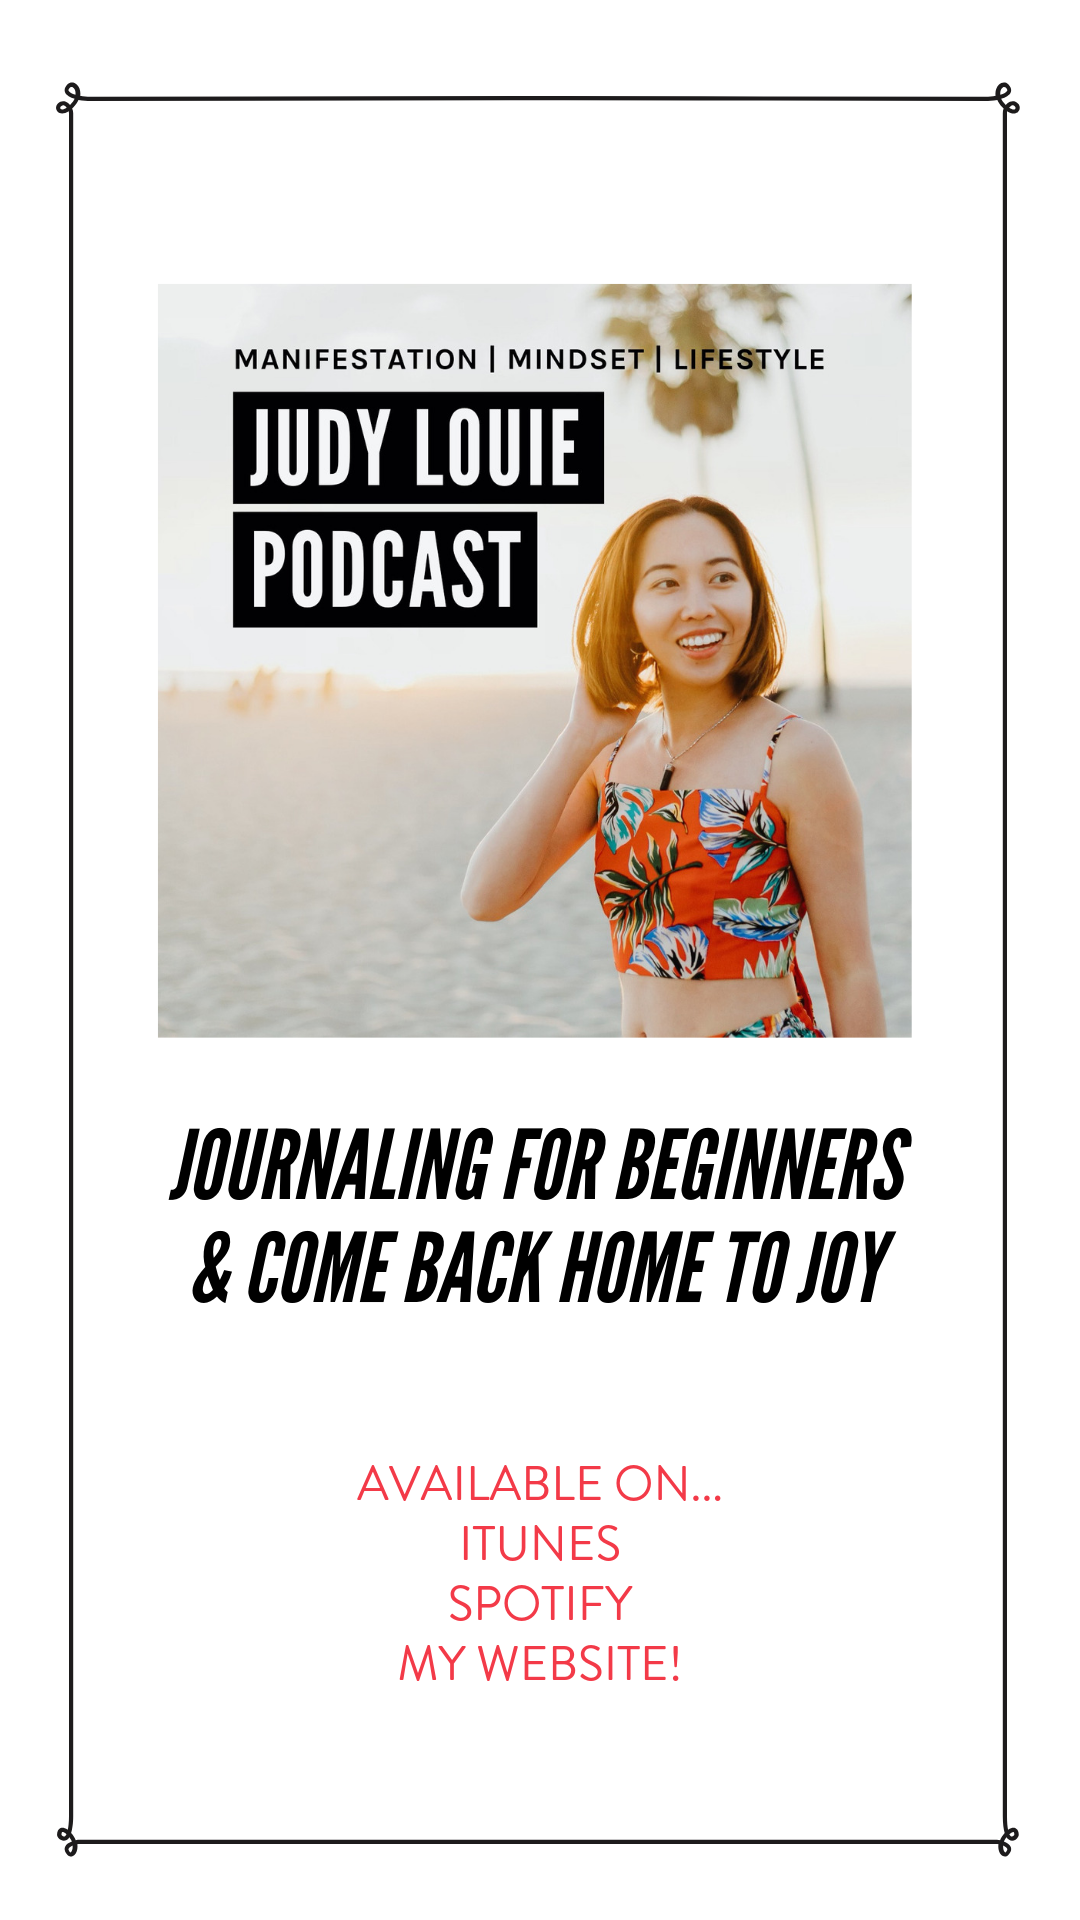 judy louie podcast - come back home to joy.png